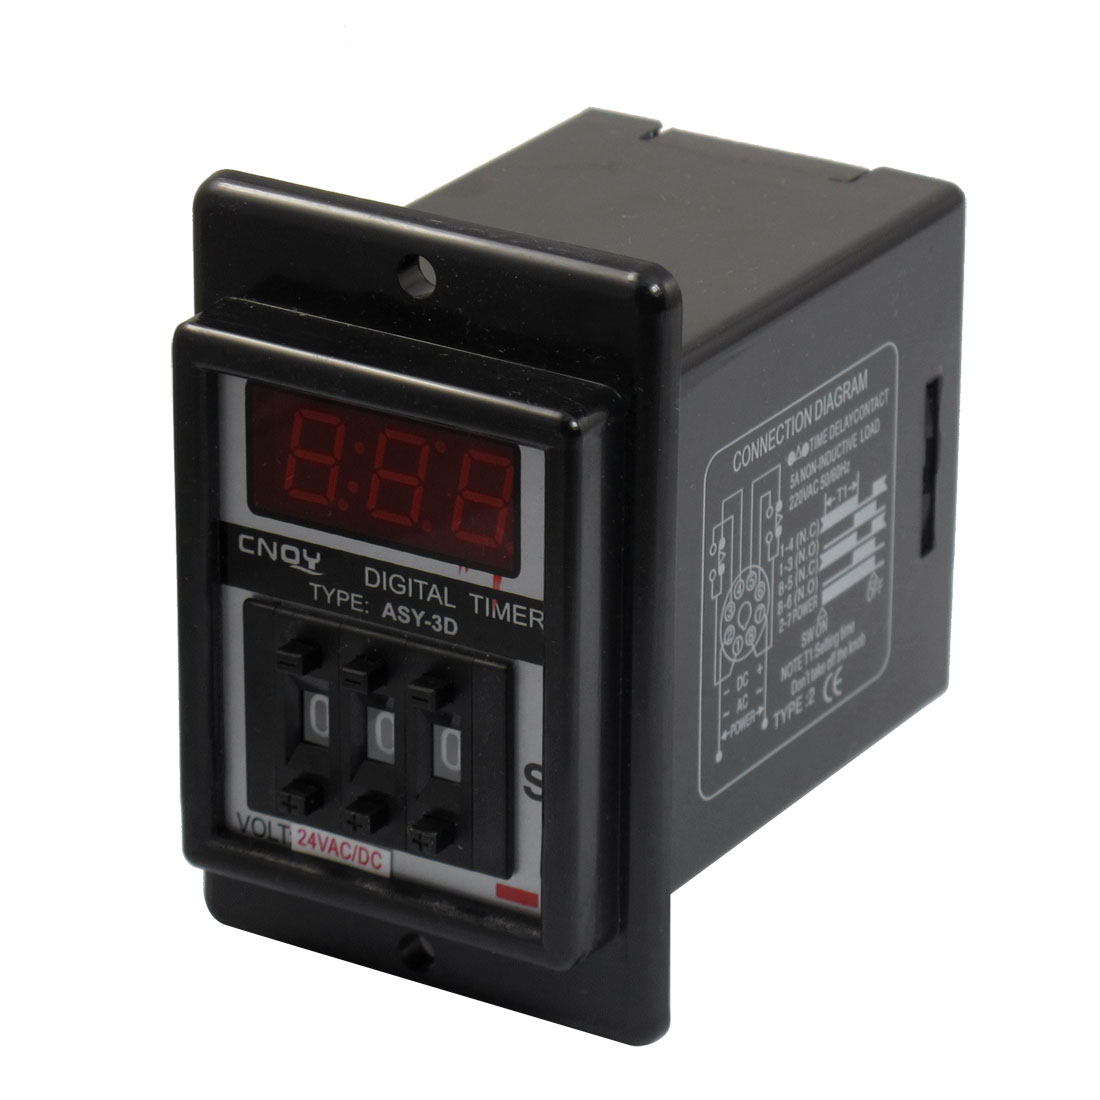 Panel Mount 1-999 Second Black Digital Timer Time Delay Relay AC/DC 24V ASY-3D